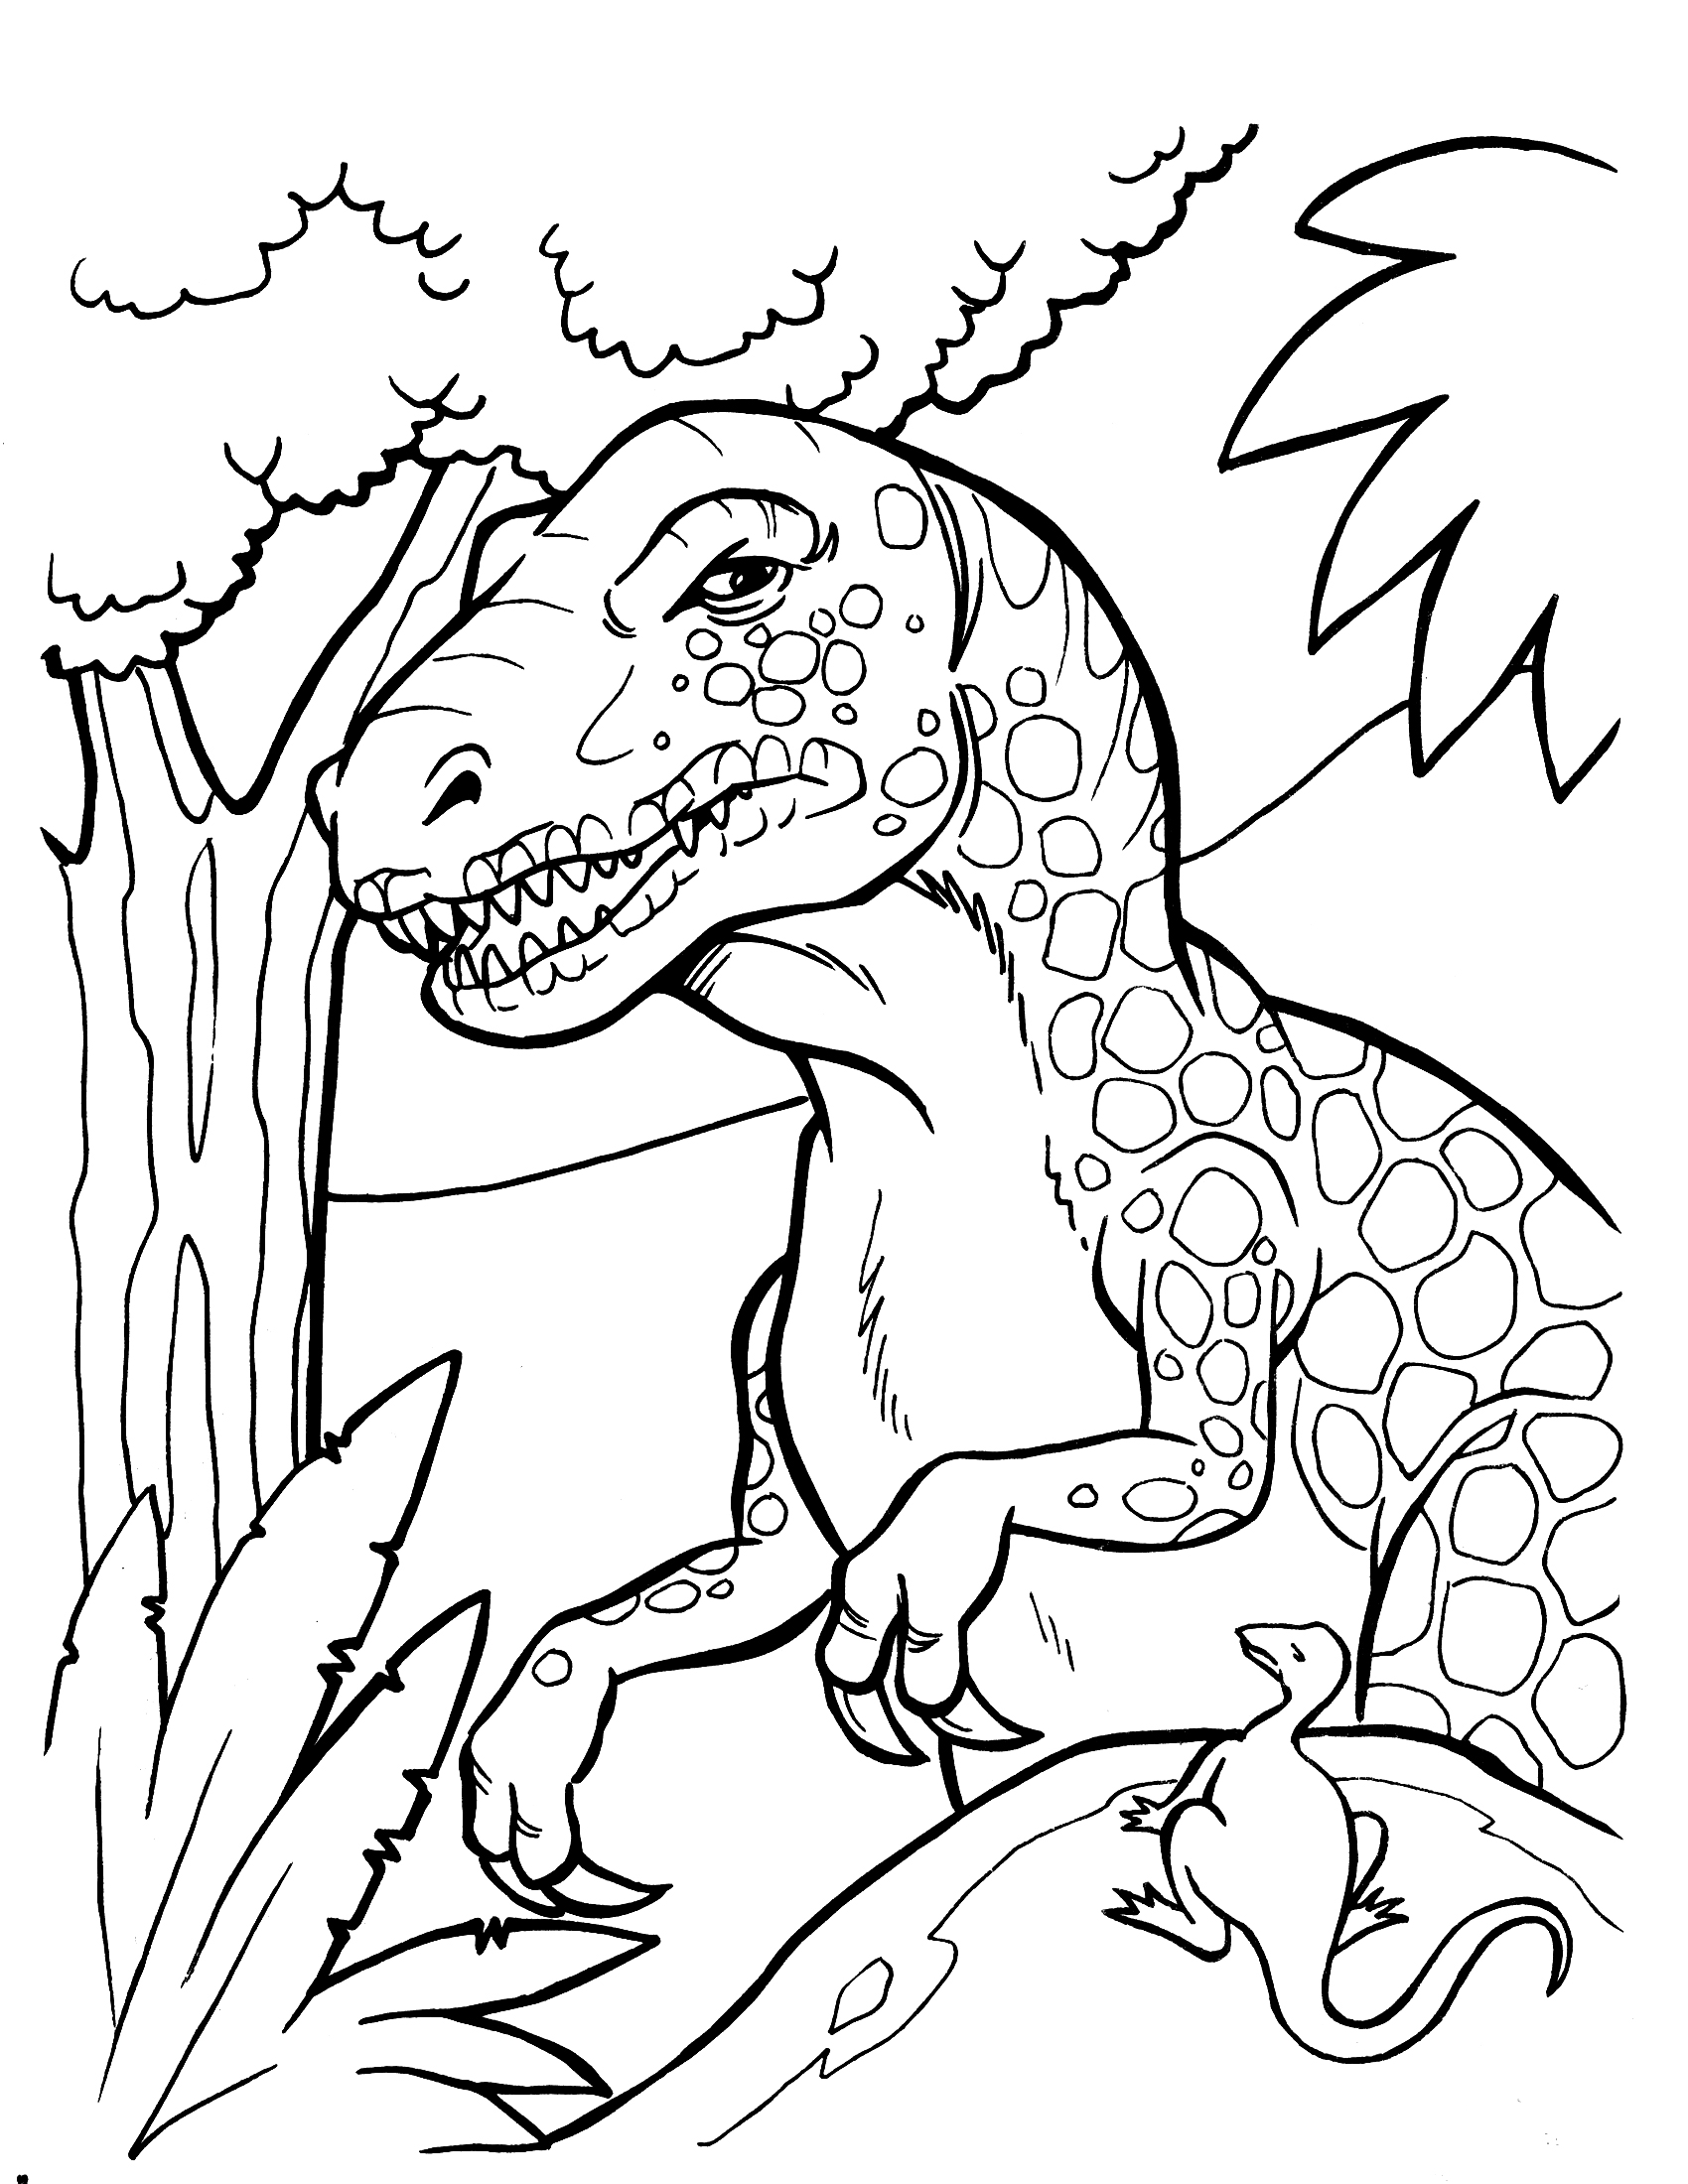 dinosaur pictures to colour in dinosaur train coloring pages dinosaurs pictures and facts pictures in colour dinosaur to